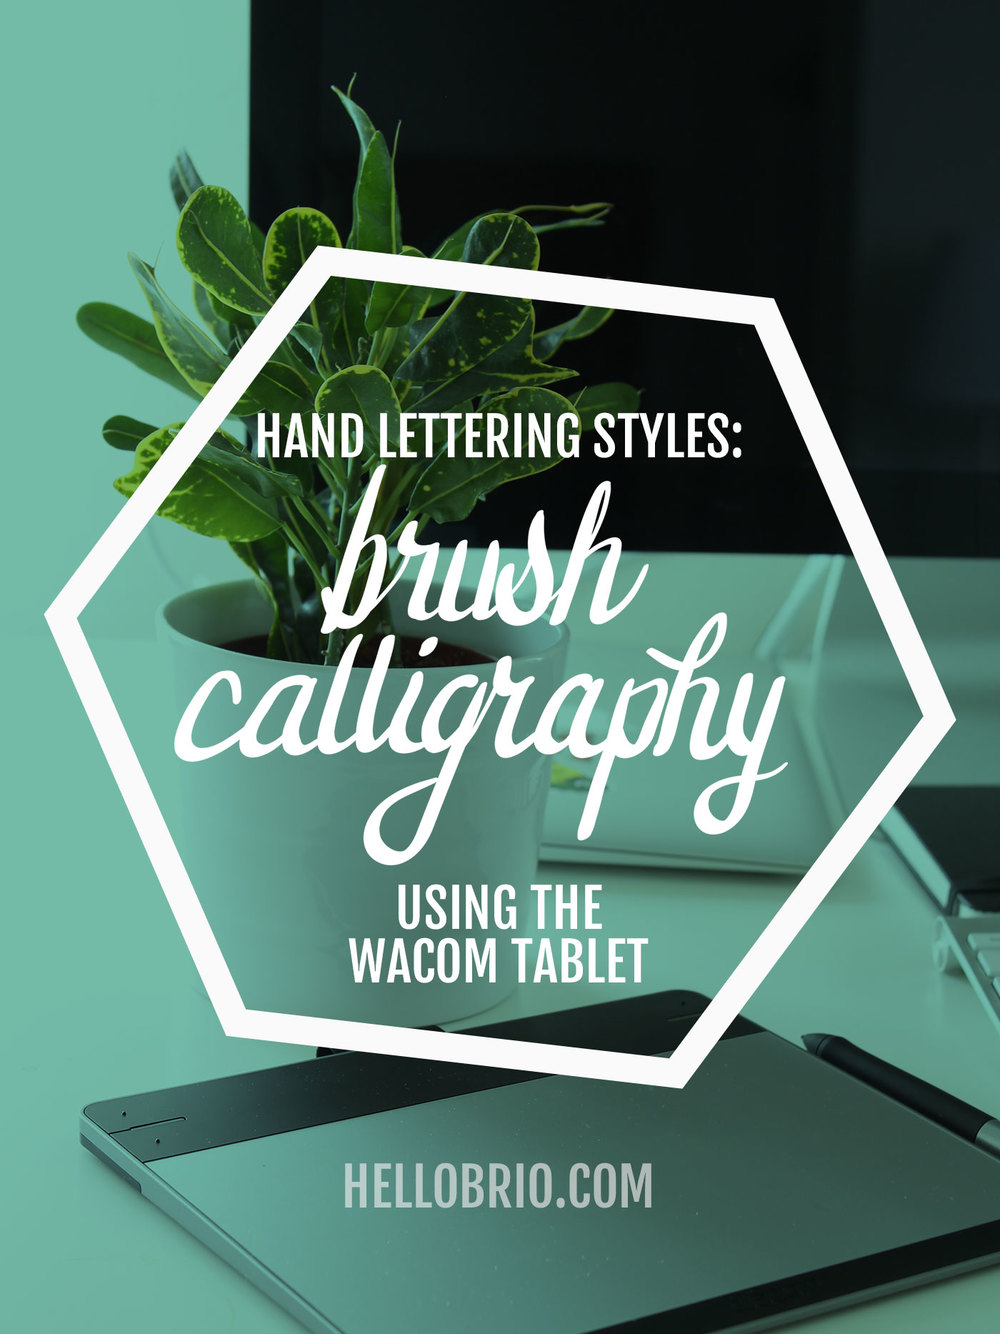 Click through to learn how to do brush calligraphy using the Wacom tablet - Illustrator and Hand Lettering Tutorial: Brush Calligraphy Using a Wacom Tablet - HelloBrio.com